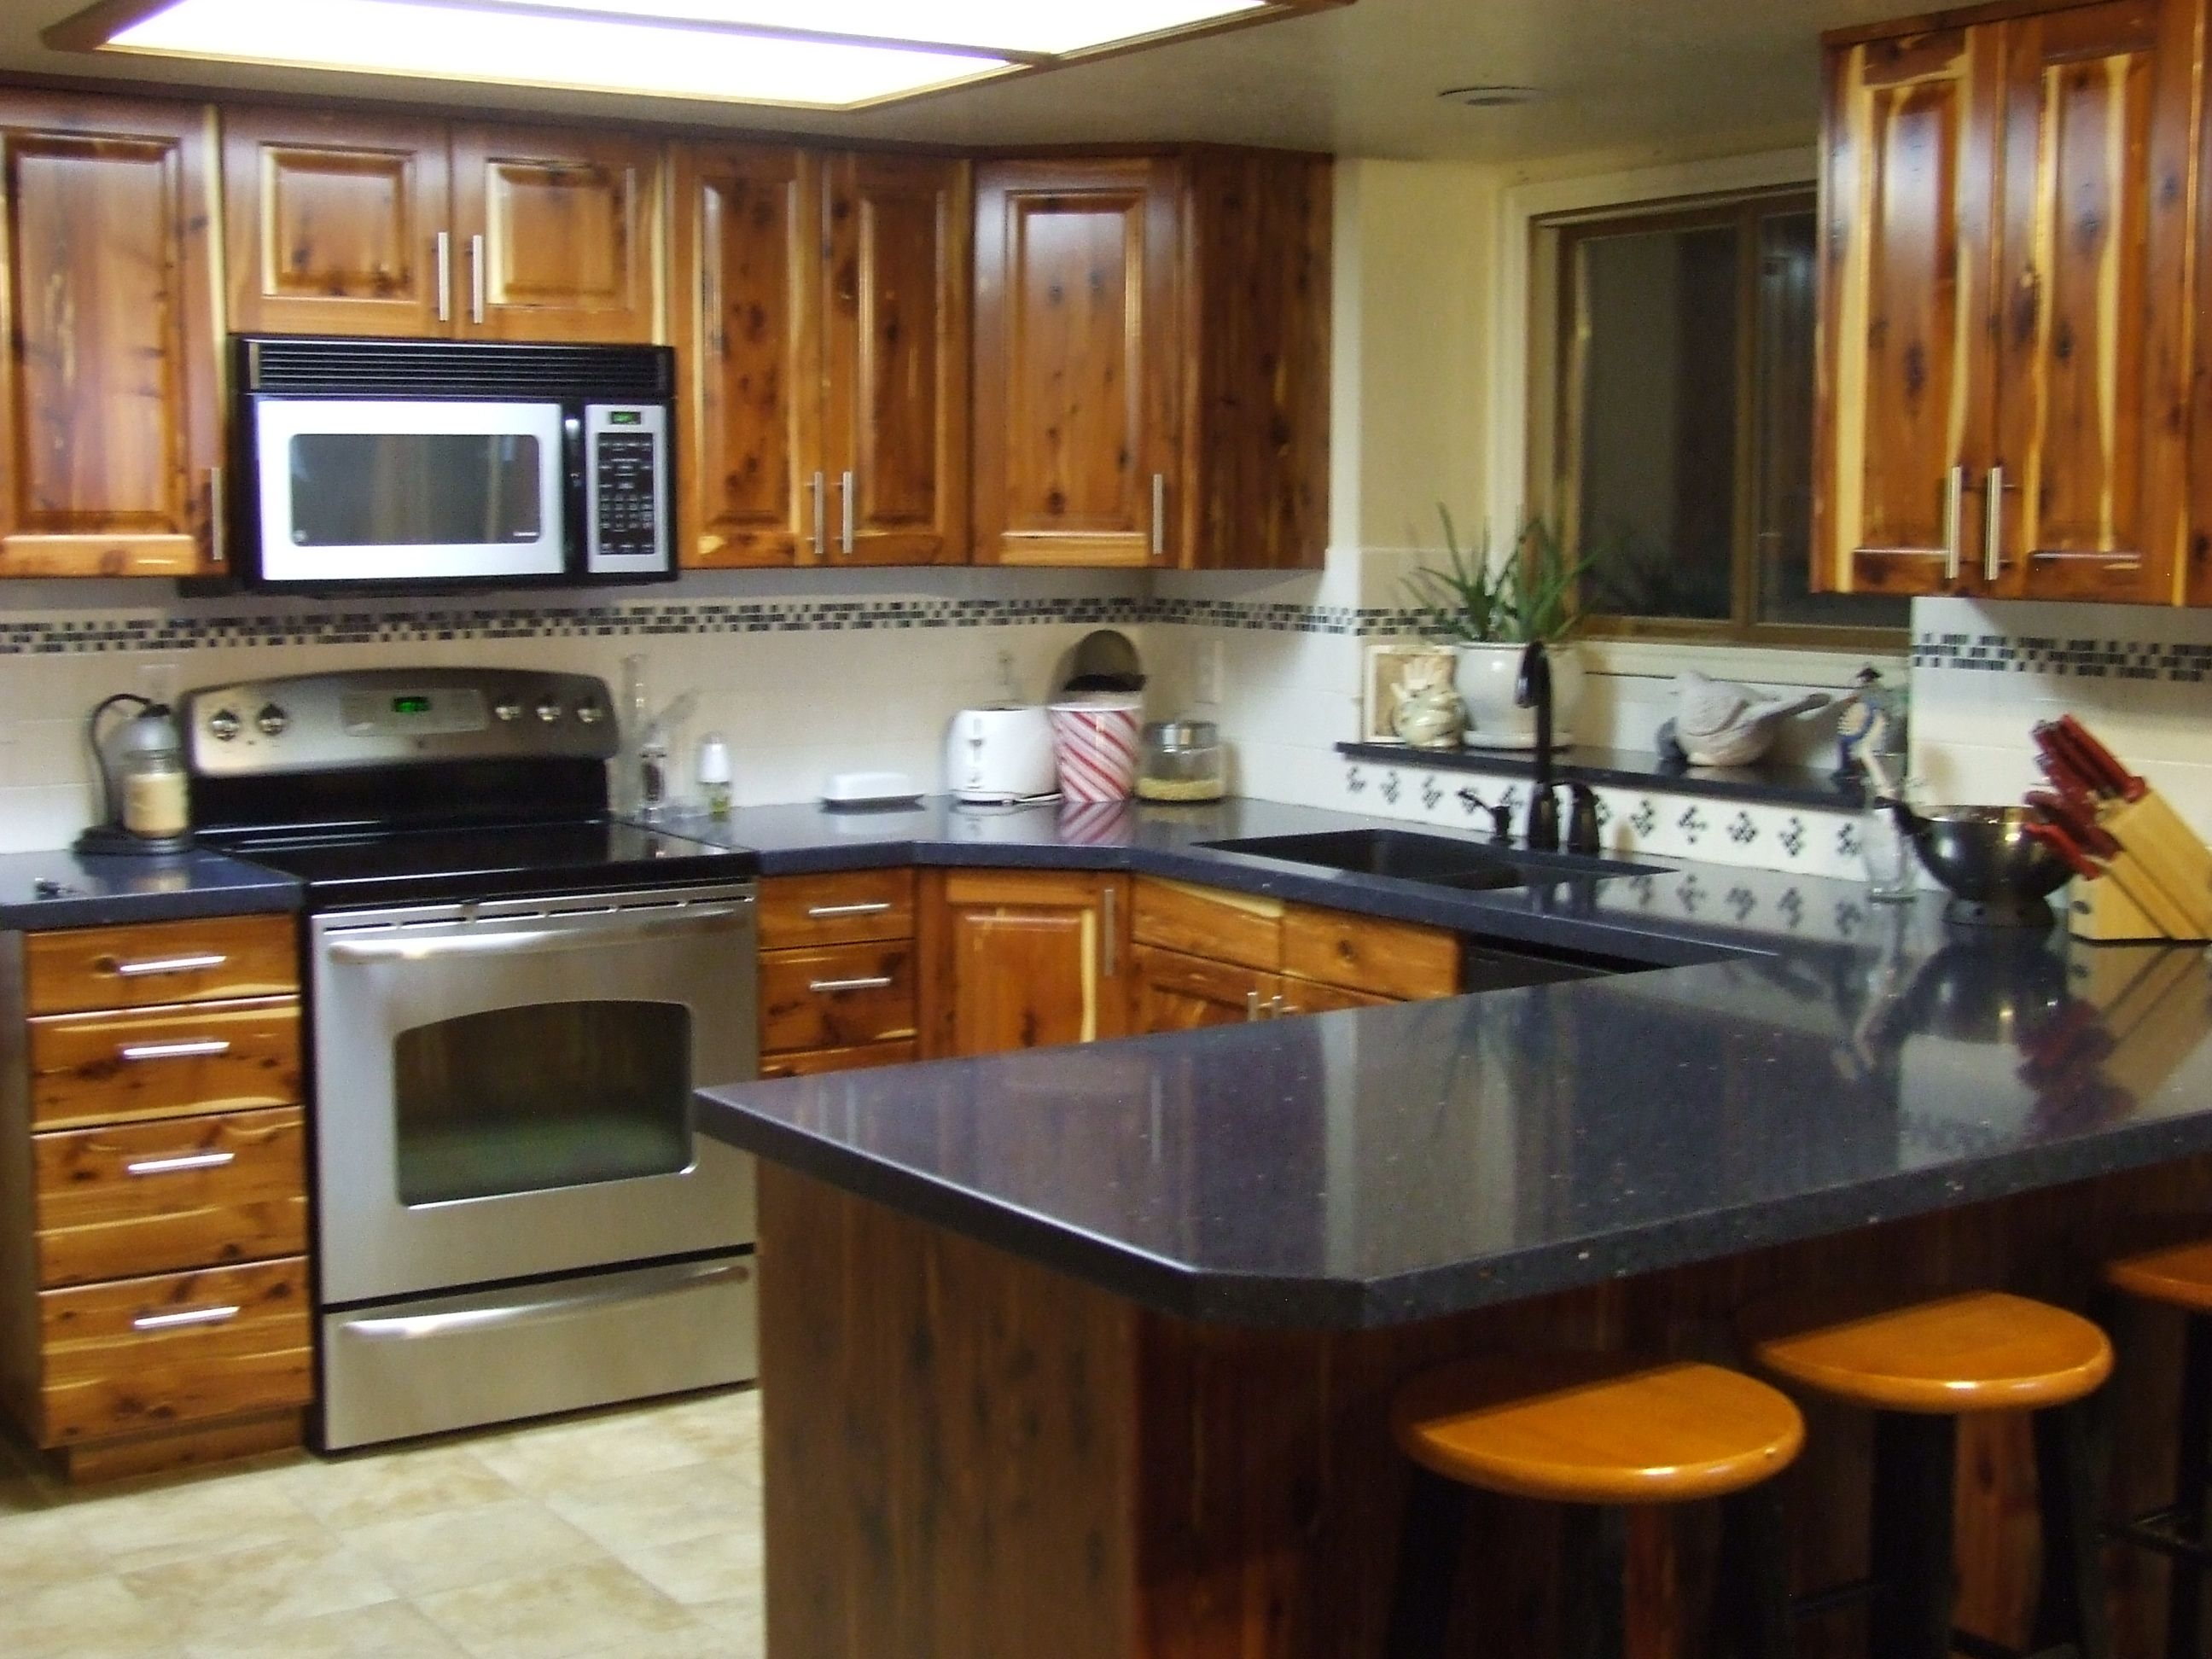 Red Cedar Kitchen Joe Might Build Me One Kitchen Remodel Kitchen Kitchen Remodel Before And After